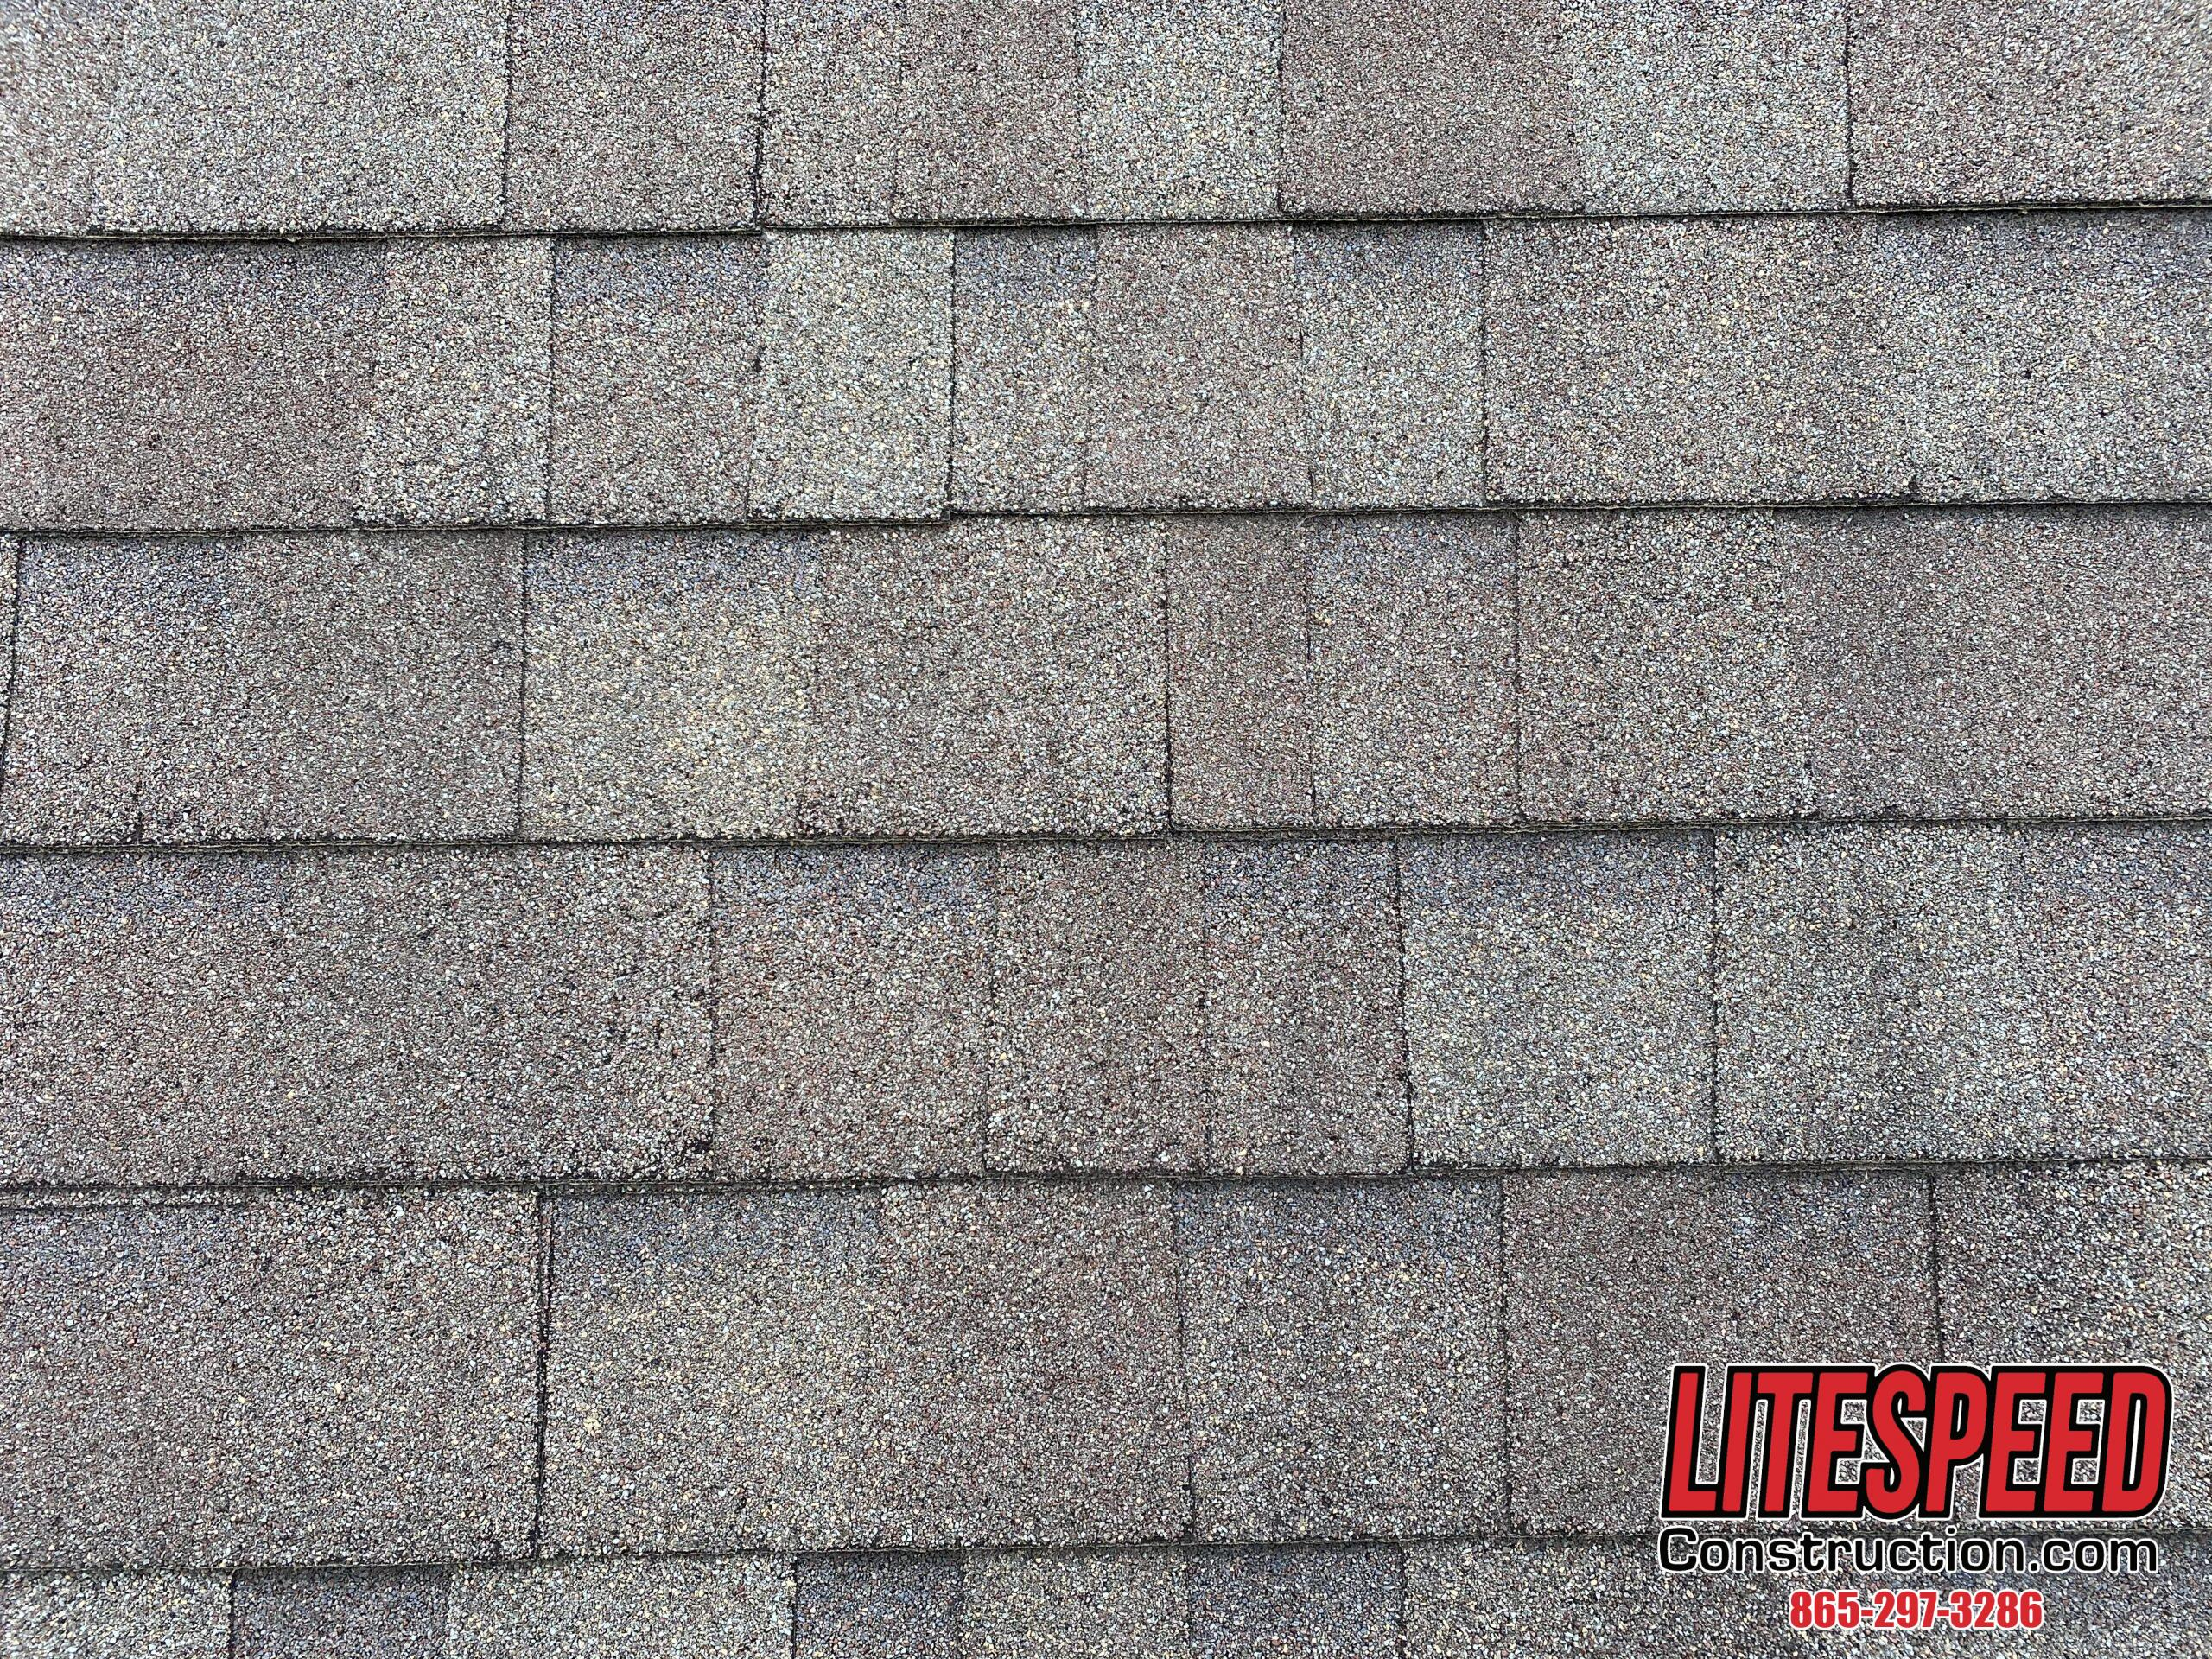 This is a picture of shingles that have been staggered correctly